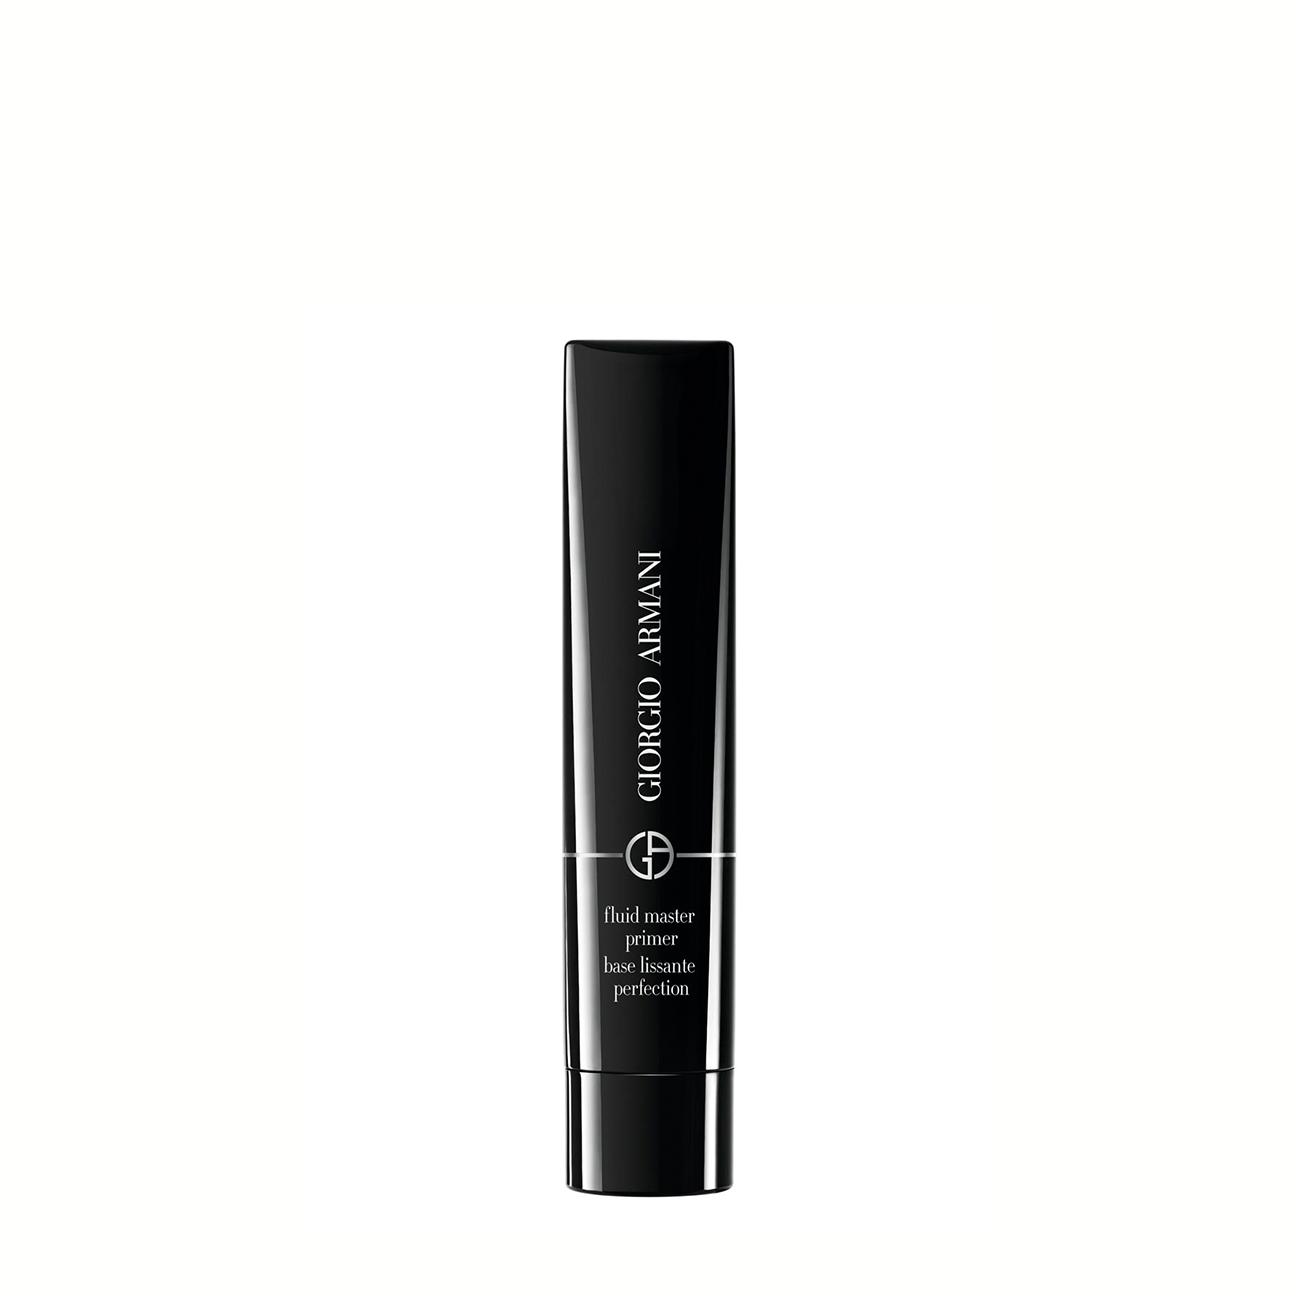 Fluid Master Primer 30ml Giorgio Armani imagine 2021 bestvalue.eu